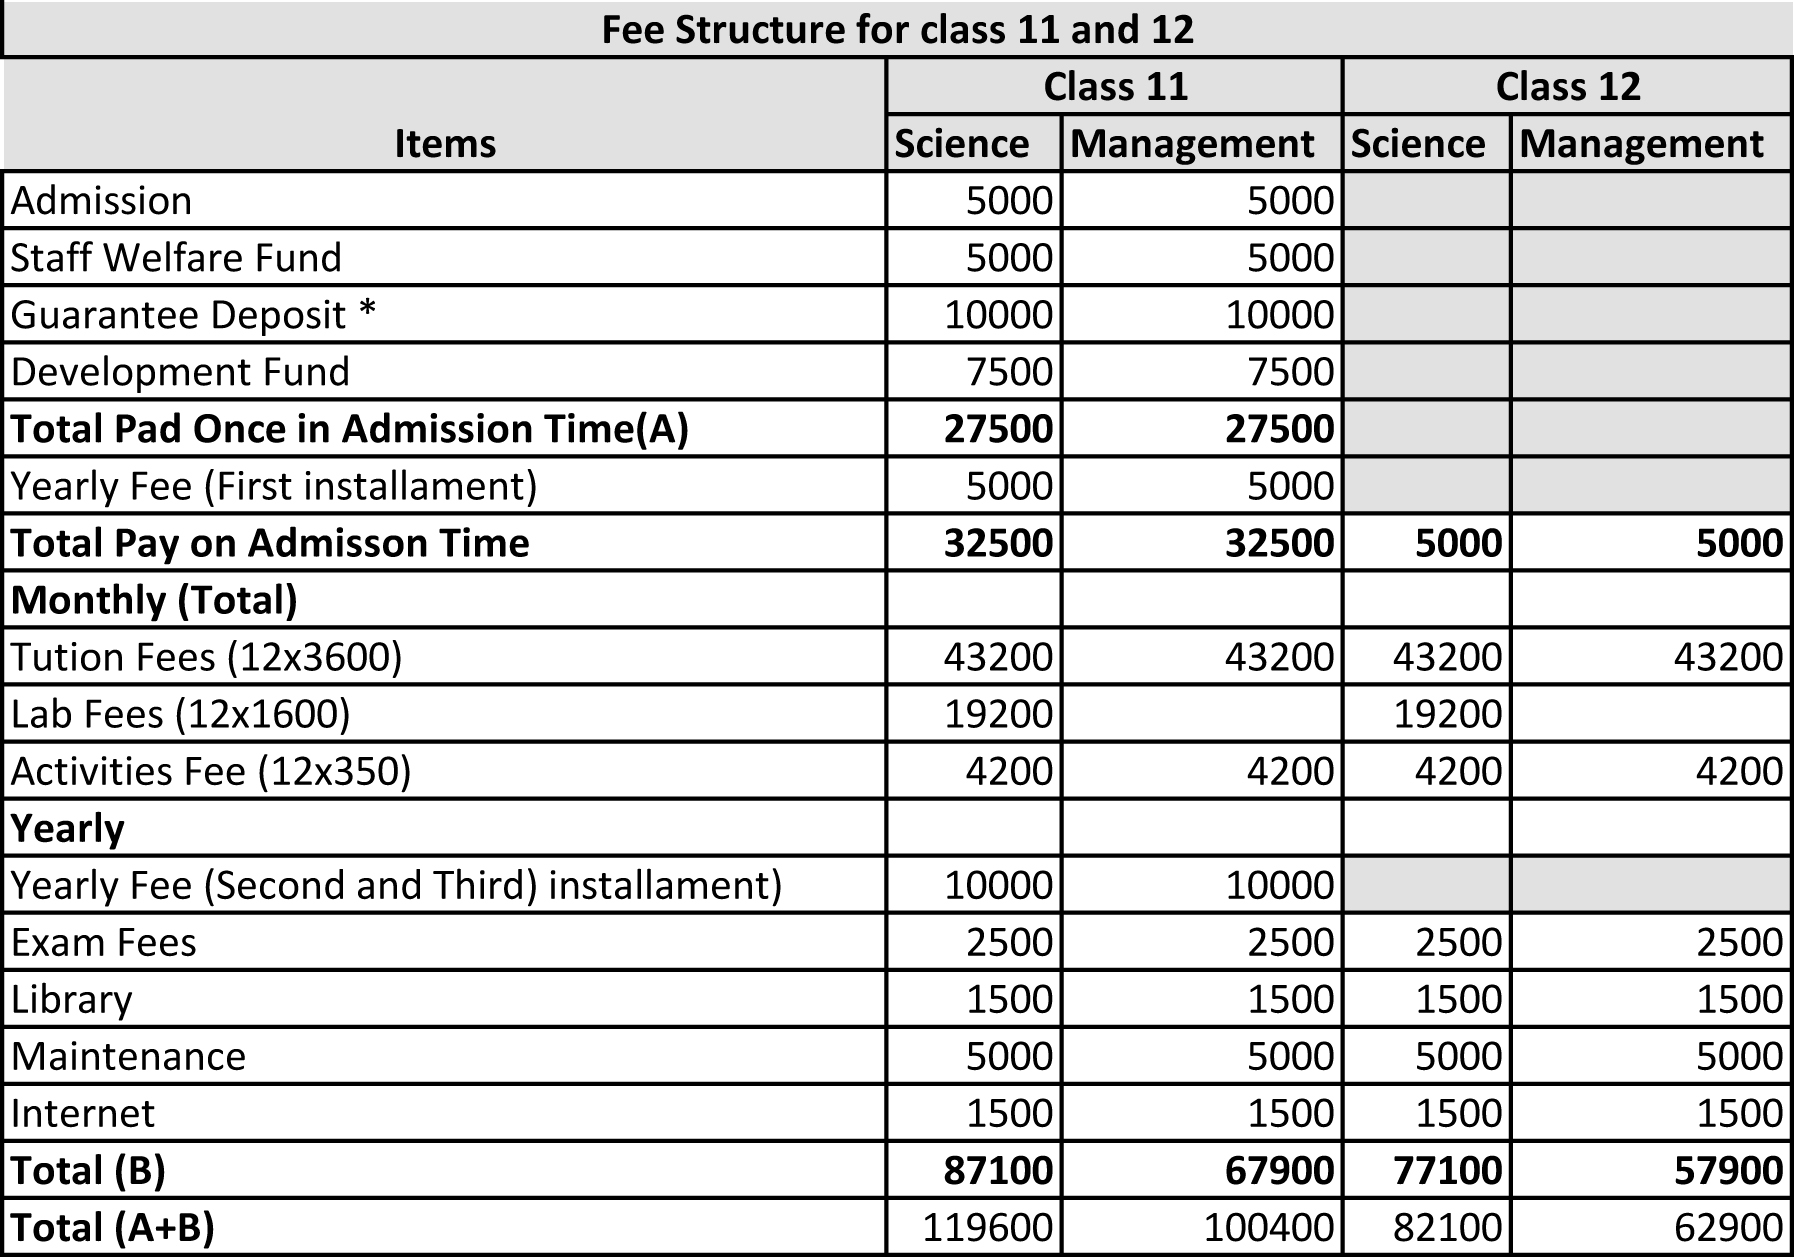 Fee Structure Class 11 and 12 St. Xavier School, Godavari